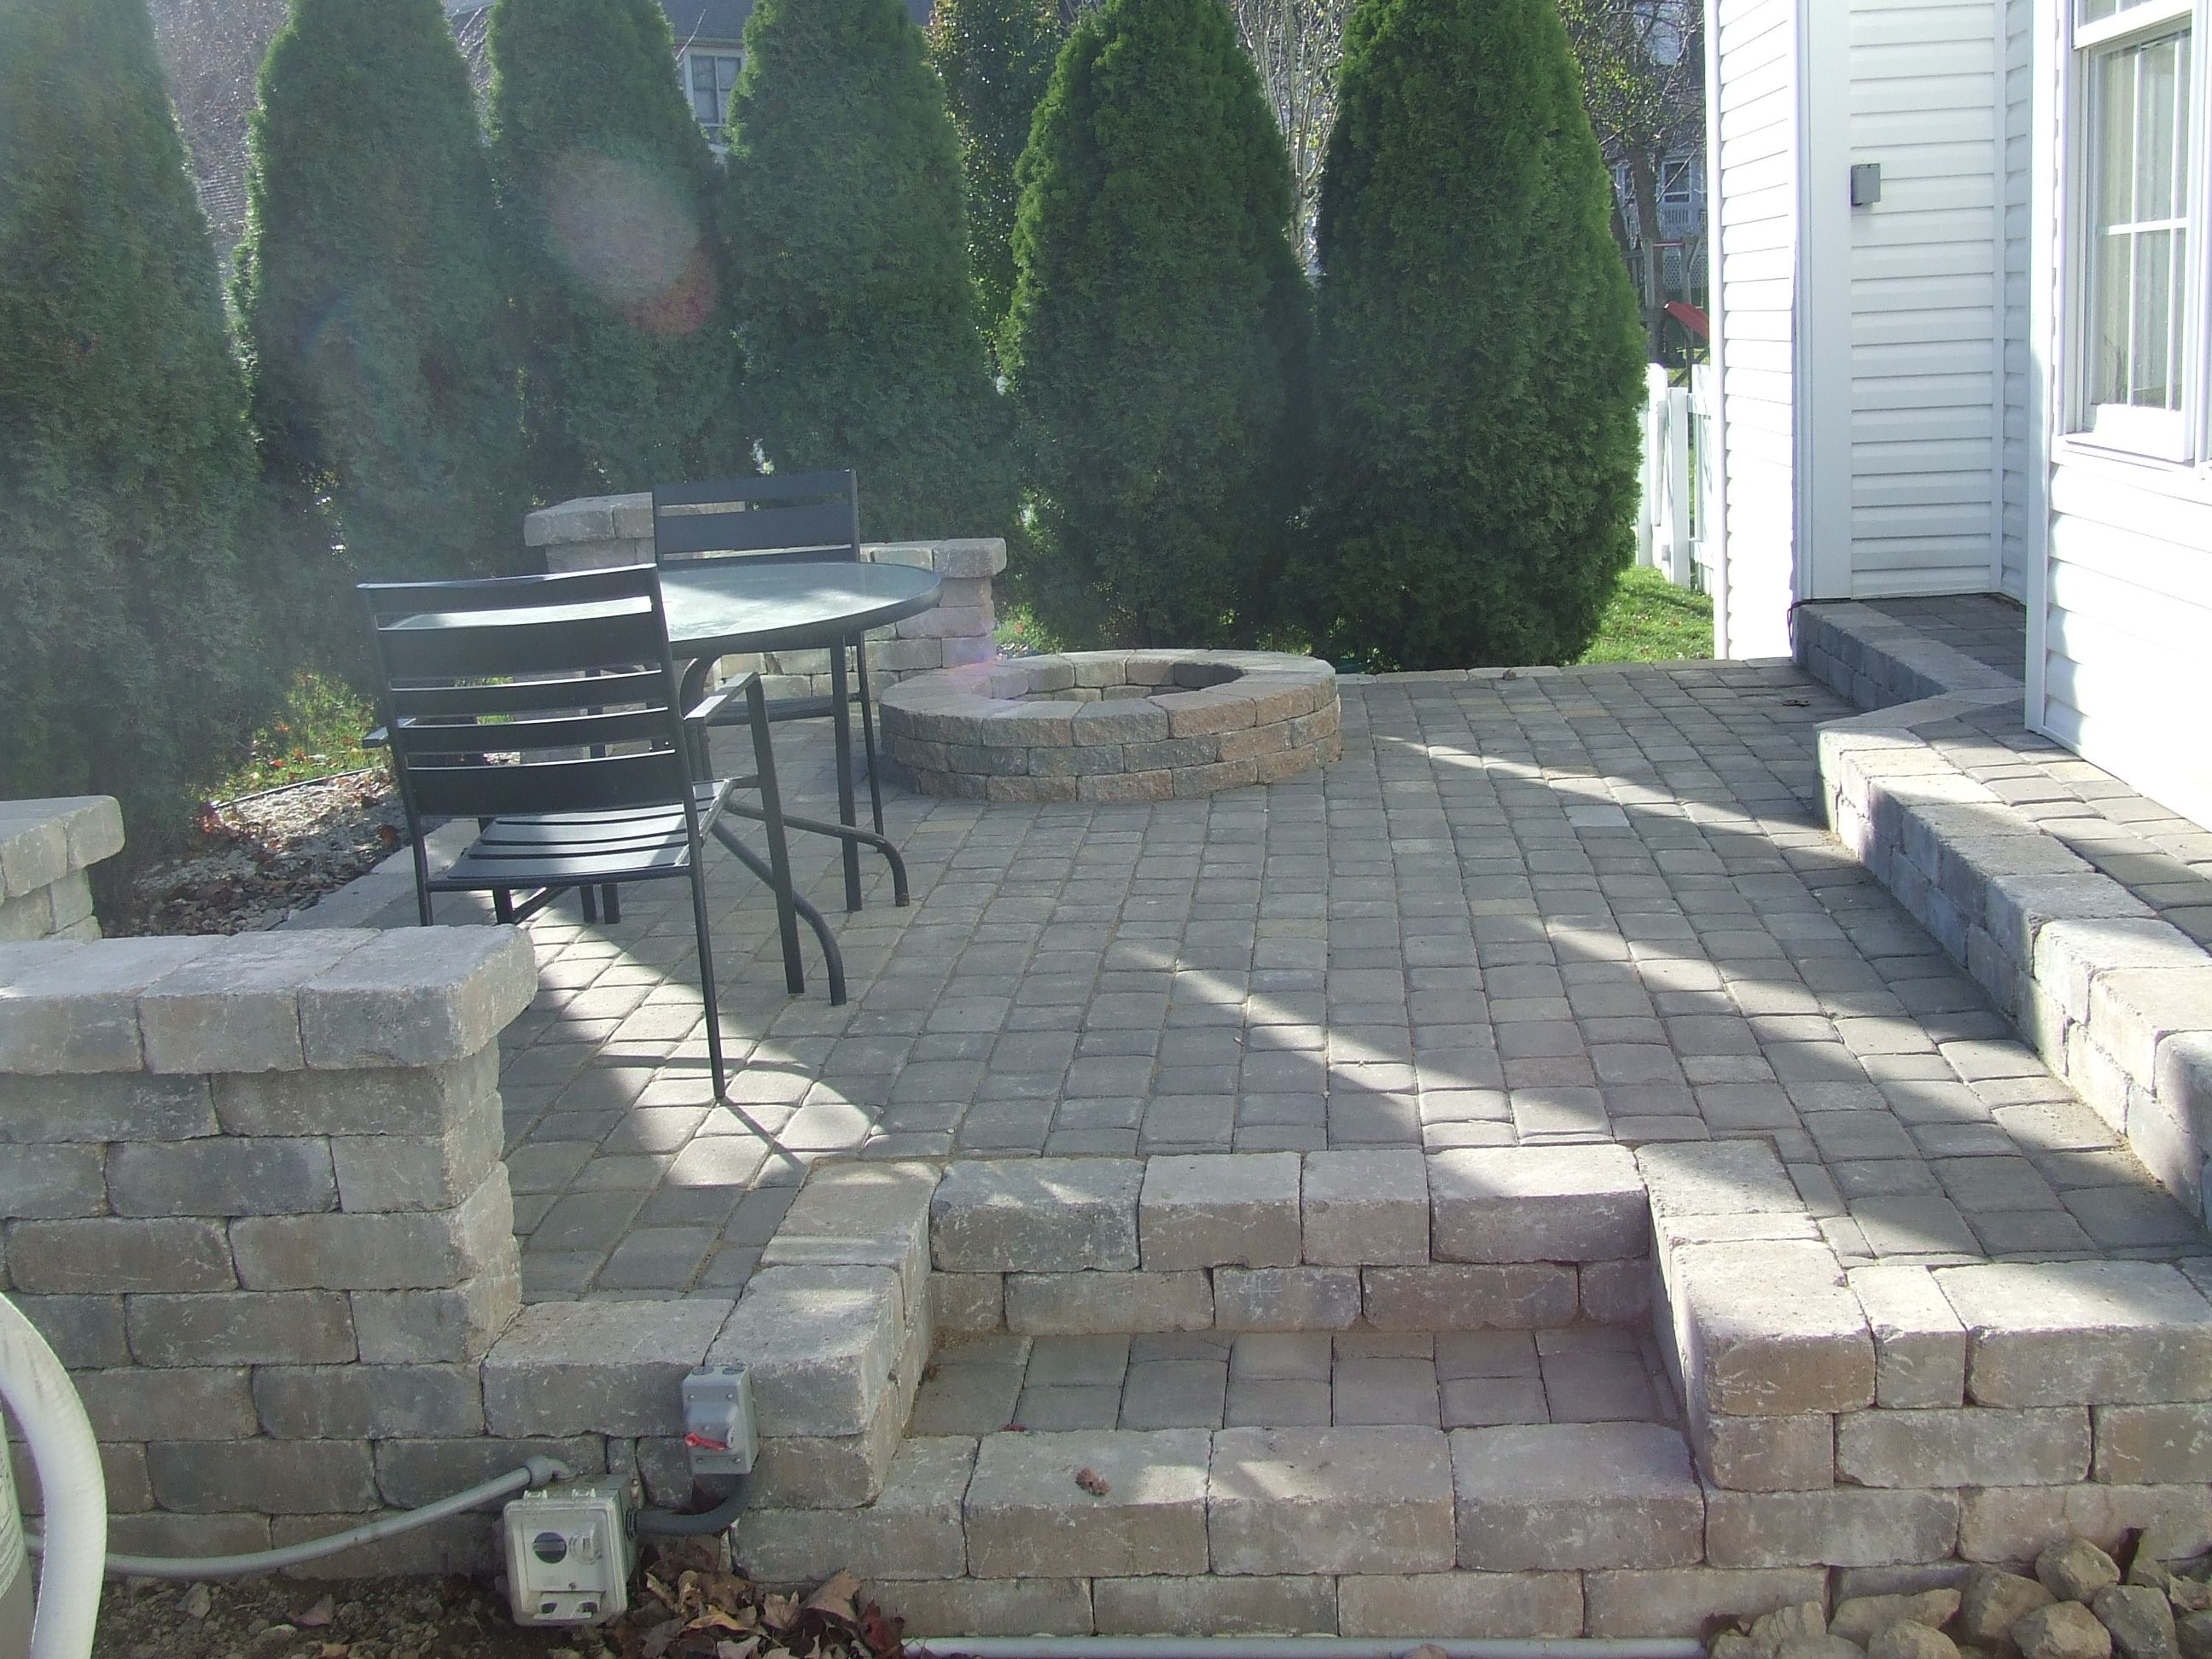 Paver Patio with fire pit. | DESIGNS | Pinterest on Paver Patio With Fire Pit Ideas id=69142